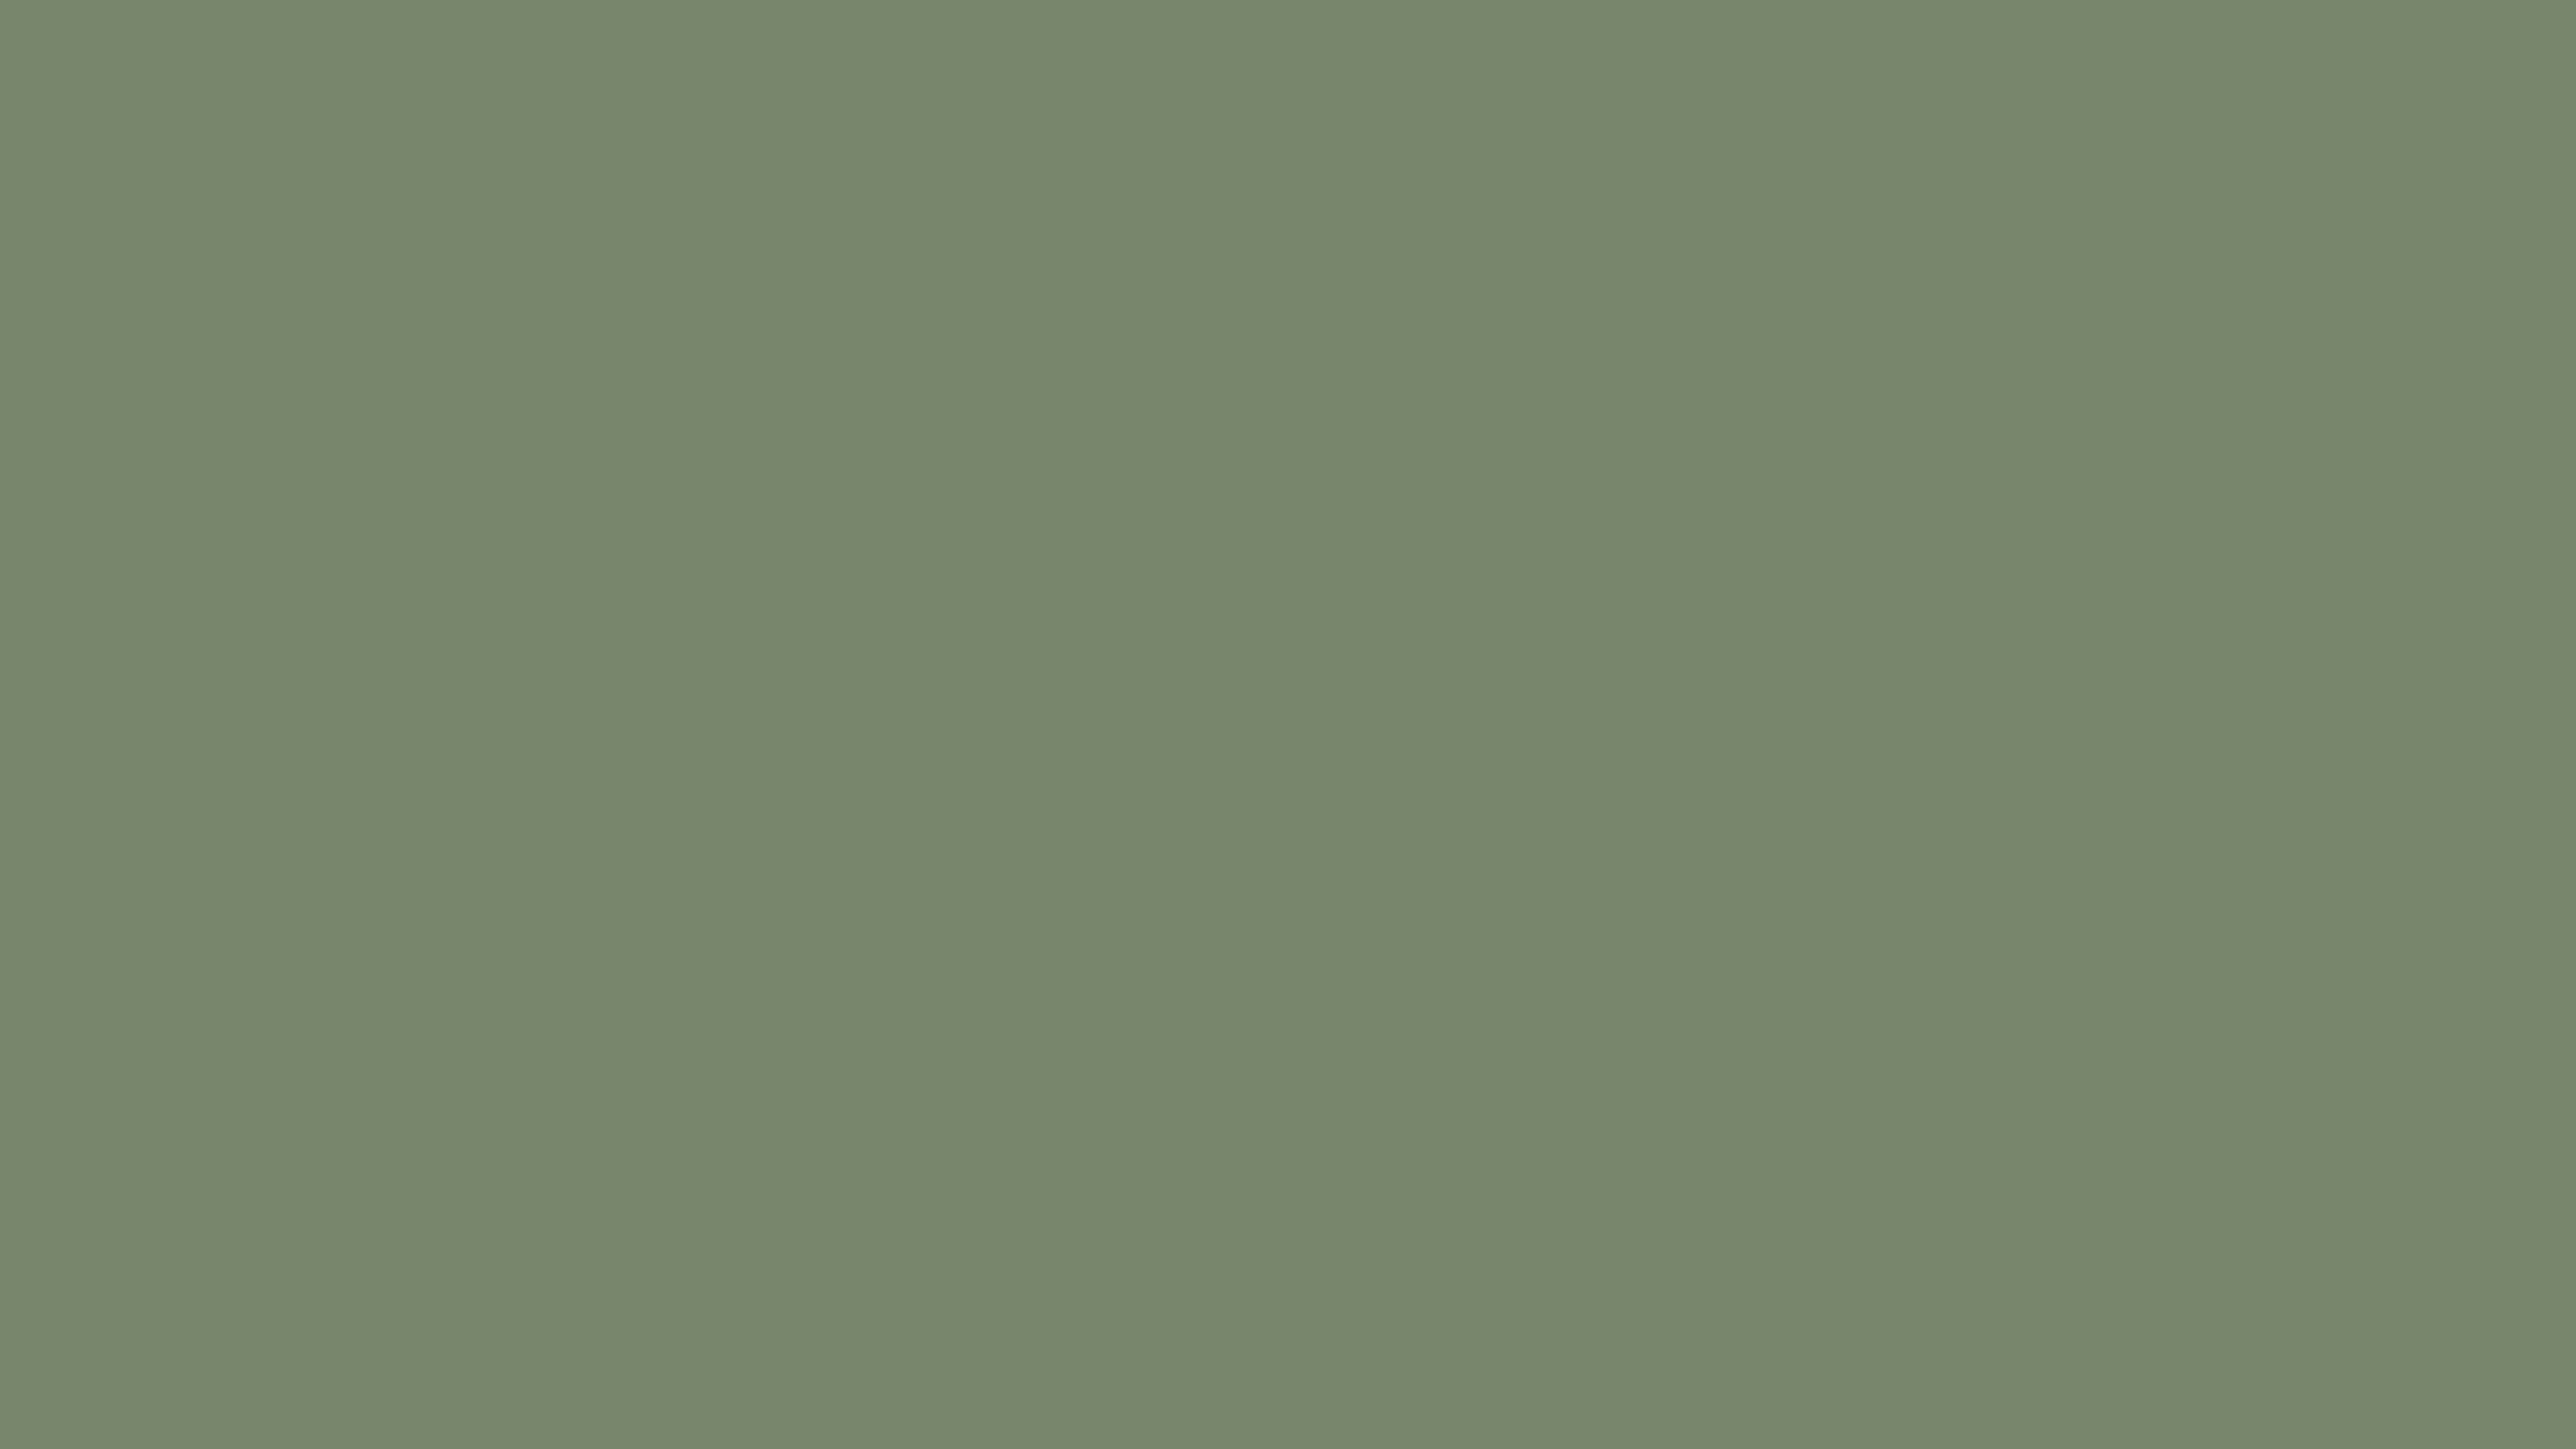 3840x2160 Camouflage Green Solid Color Background